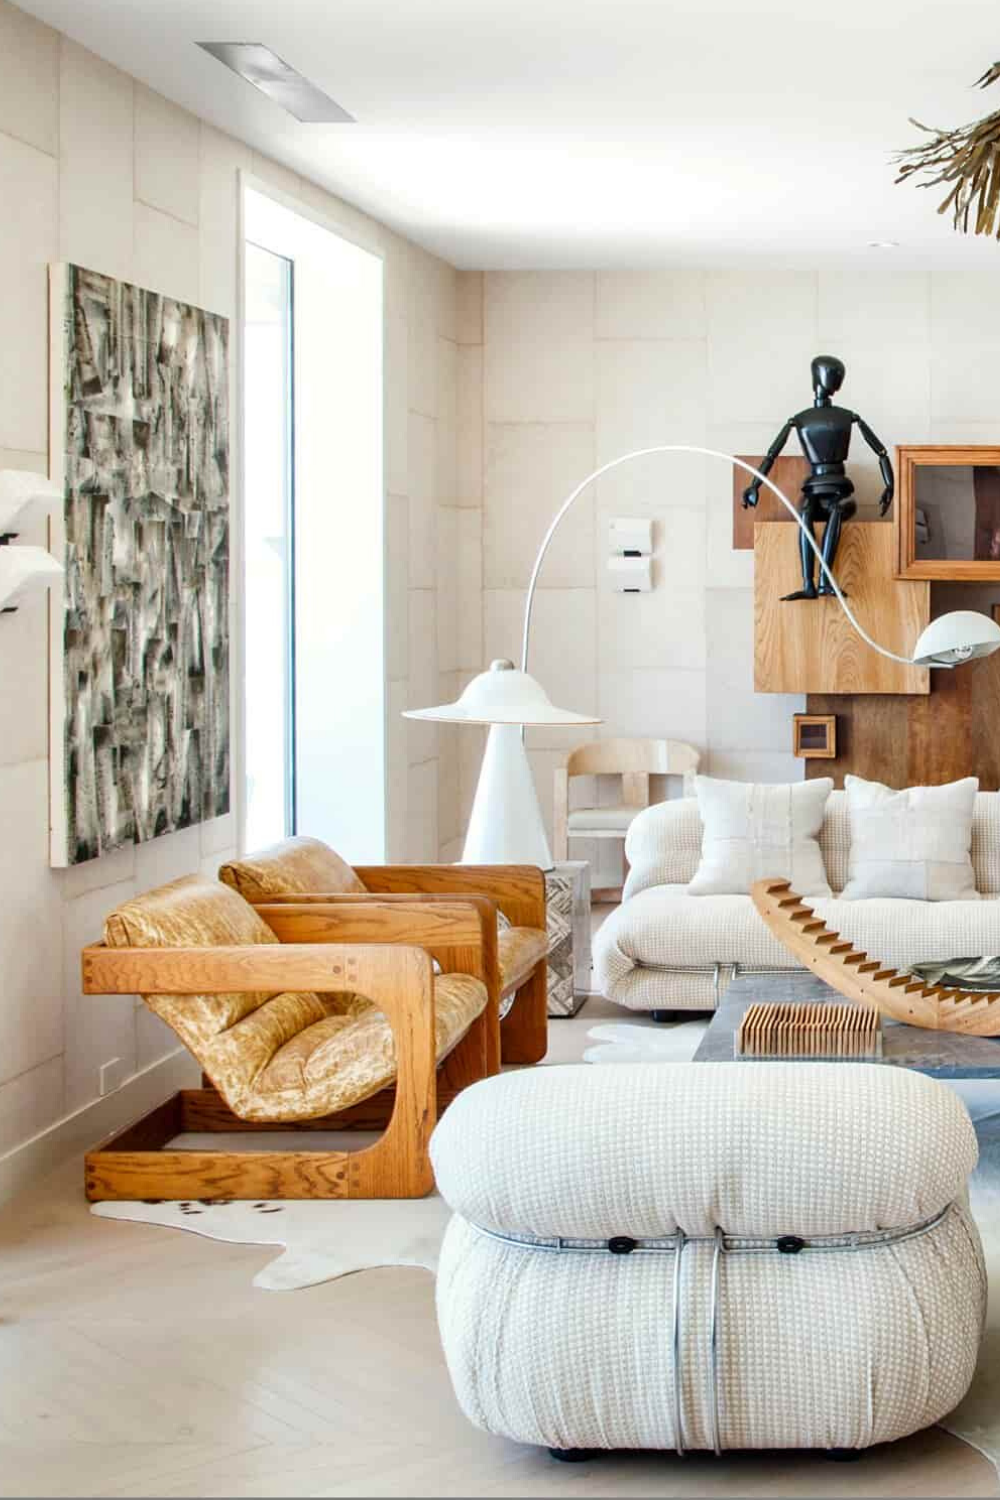 Design diva Kelly Wearstler and her style defined as a multi-layered, multi-faceted, experiential, sensory design and approach. Read more in Insplosion. Visit us for: #interior #decor #moderndecor #interiordecor #moderninteriordesign #contemporaryinteriors #besthomestyle #interiordesign #luxury #interiors #interiordesign #homedecor #livingroom